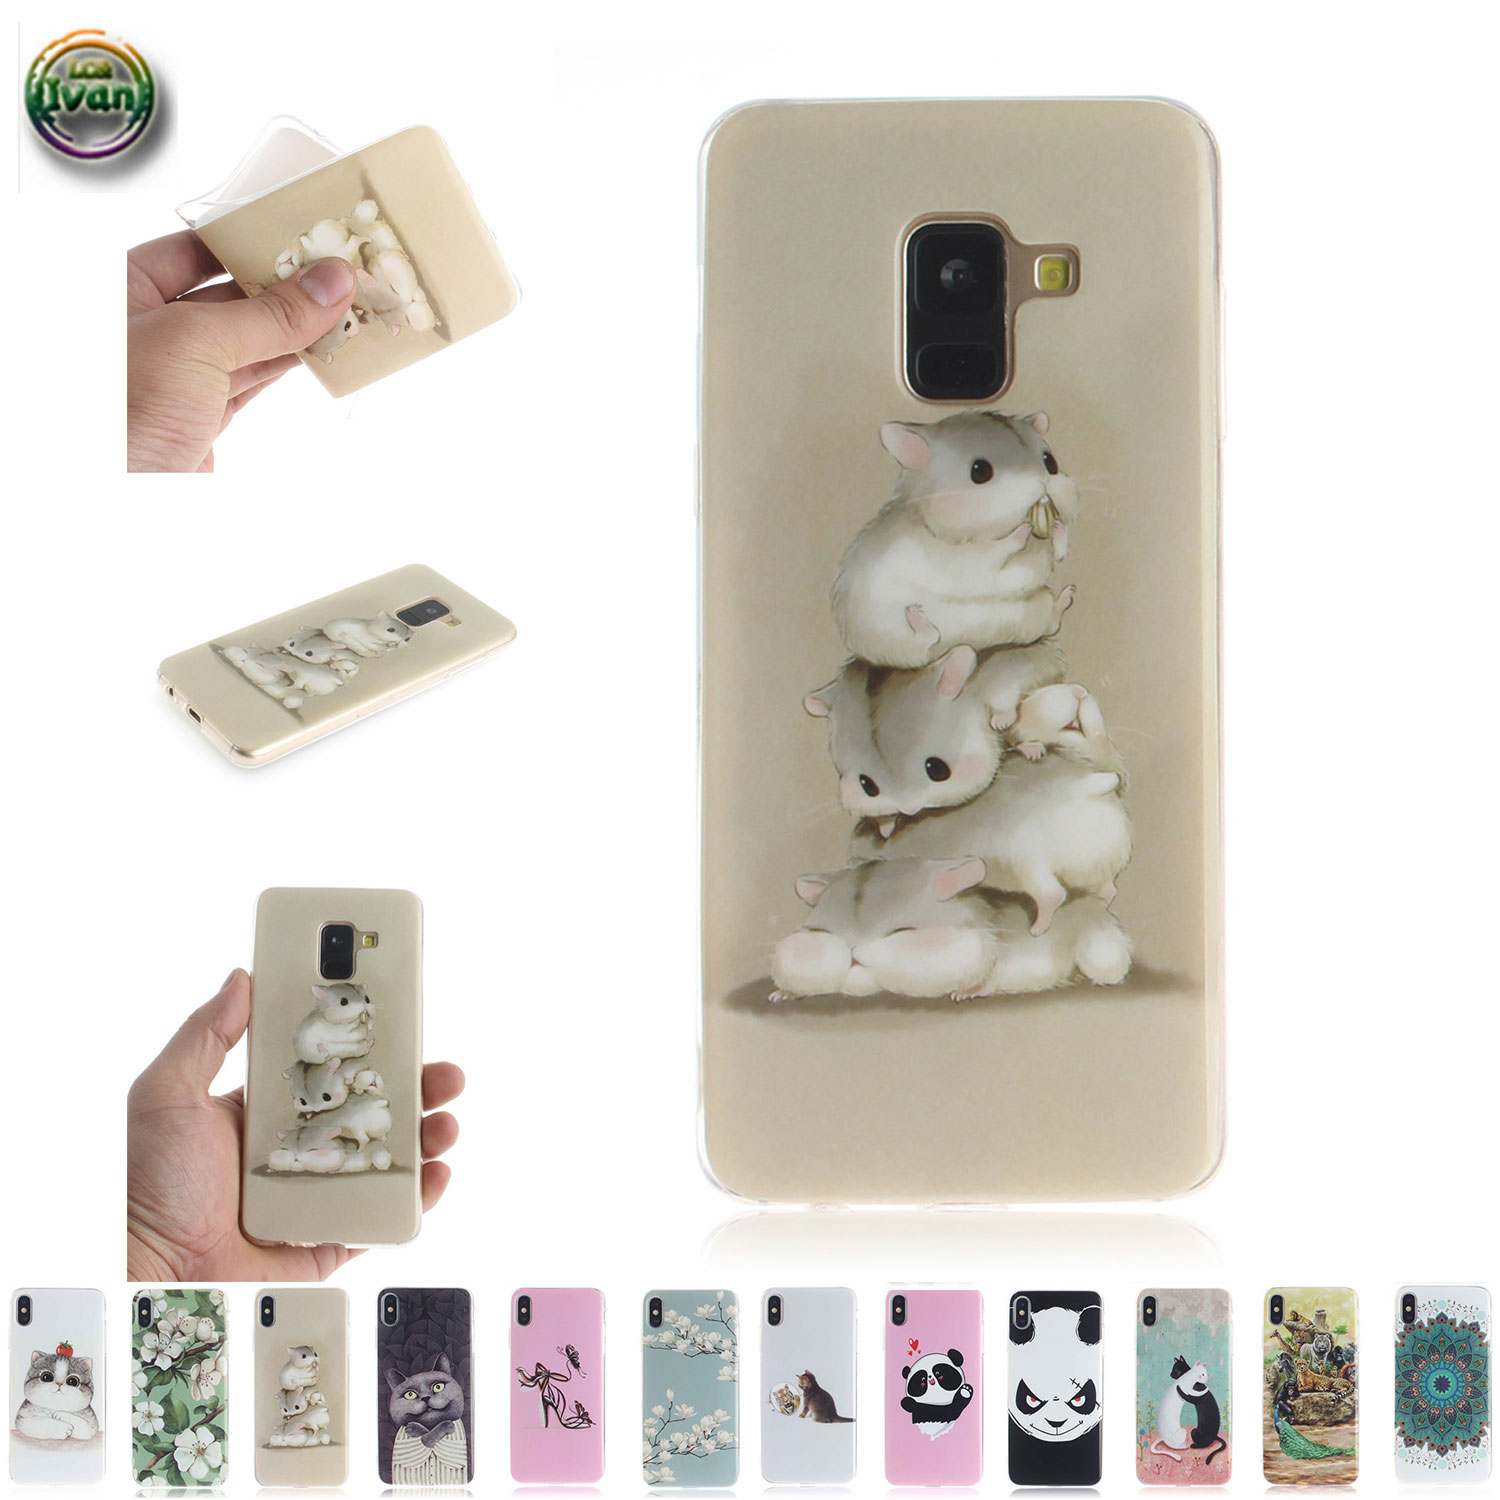 Case Suit For <font><b>Samsung</b></font> Galaxy A8 2018 SM-<font><b>A530F</b></font> SM-<font><b>A530F</b></font>/DS Case Phone <font><b>Cover</b></font> For Galaxy 8A SM <font><b>A530F</b></font> <font><b>A530F</b></font>/DS Silicon Damping Coque image